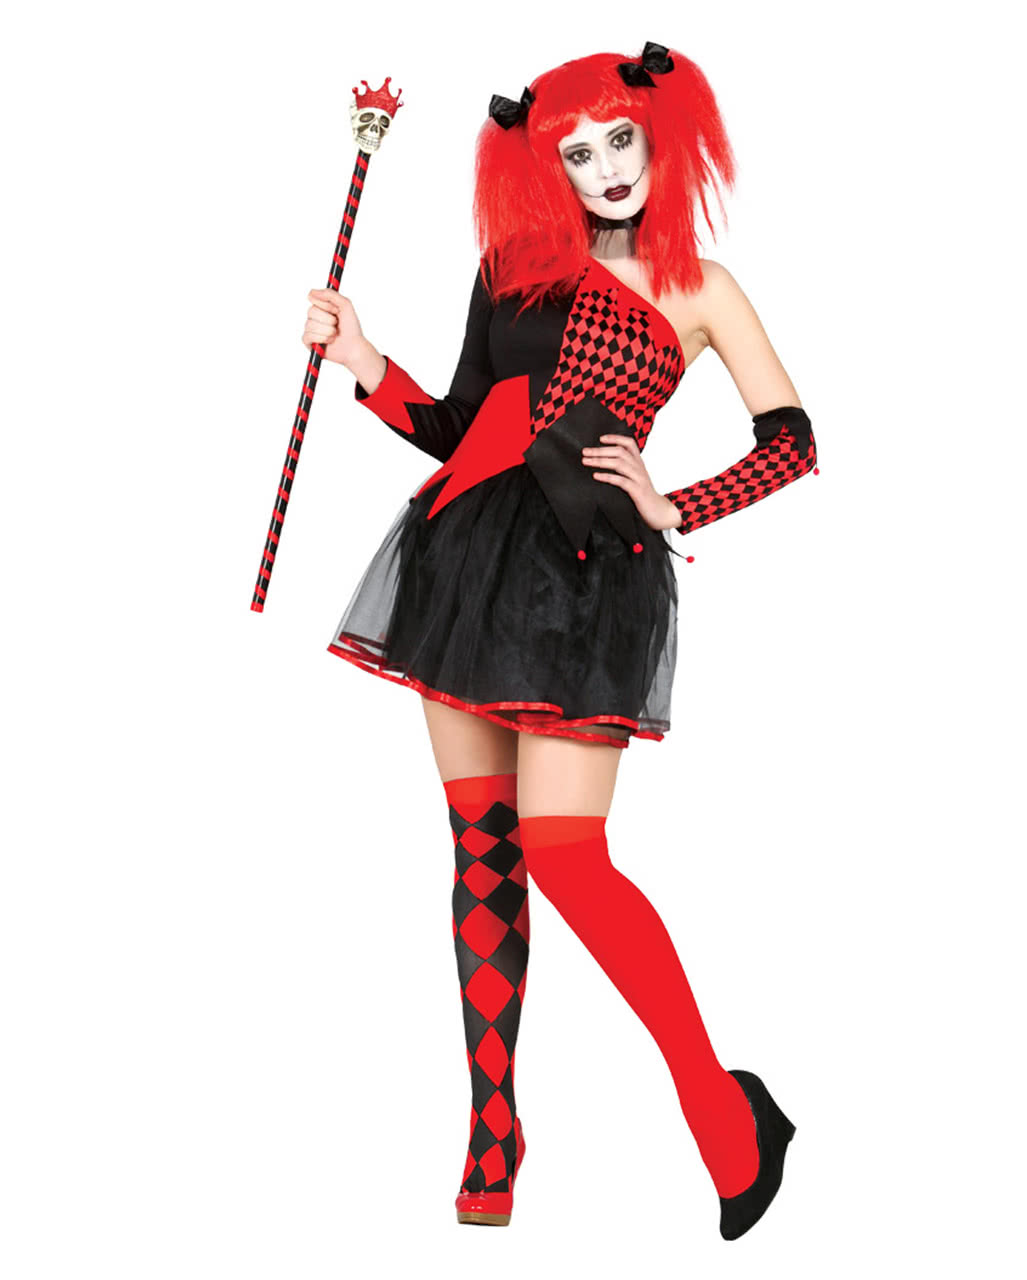 harlequin queen woman costume for movie theme parties horror. Black Bedroom Furniture Sets. Home Design Ideas